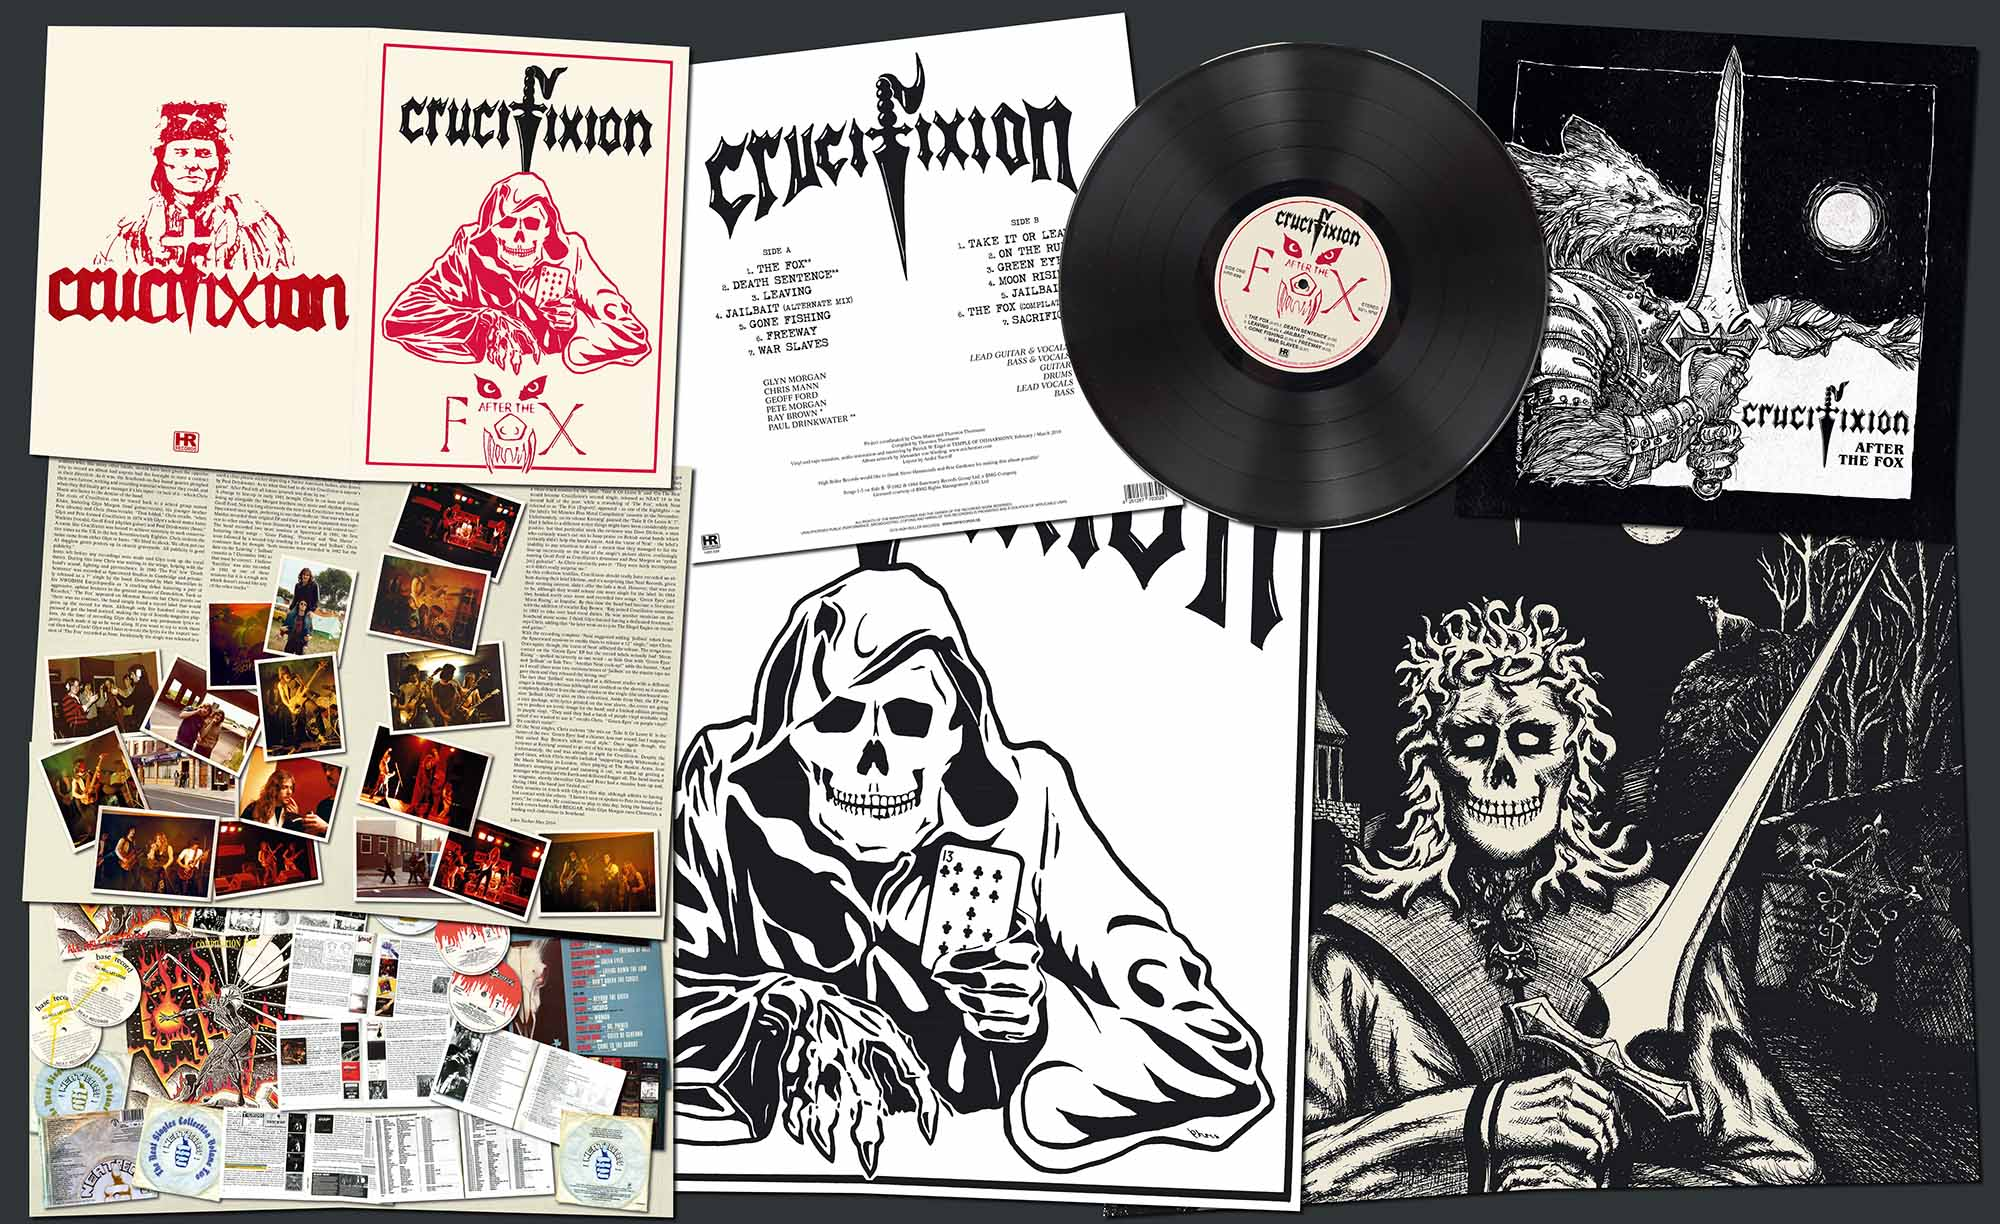 CRUCIFIXION - After the Fox LP